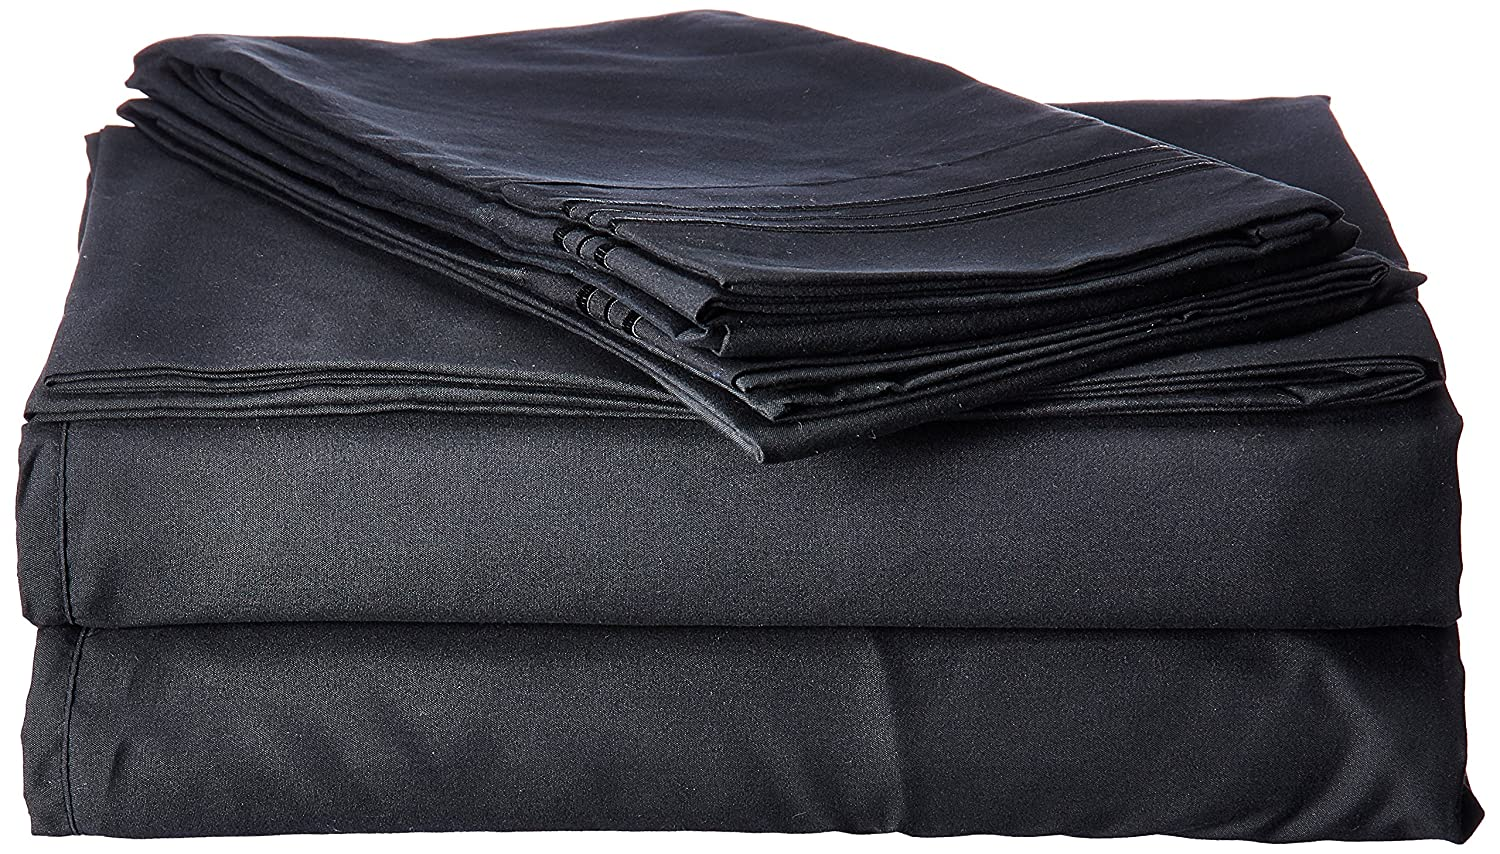 1500 Supreme Collection Extra Soft Queen Sheets Set, Black